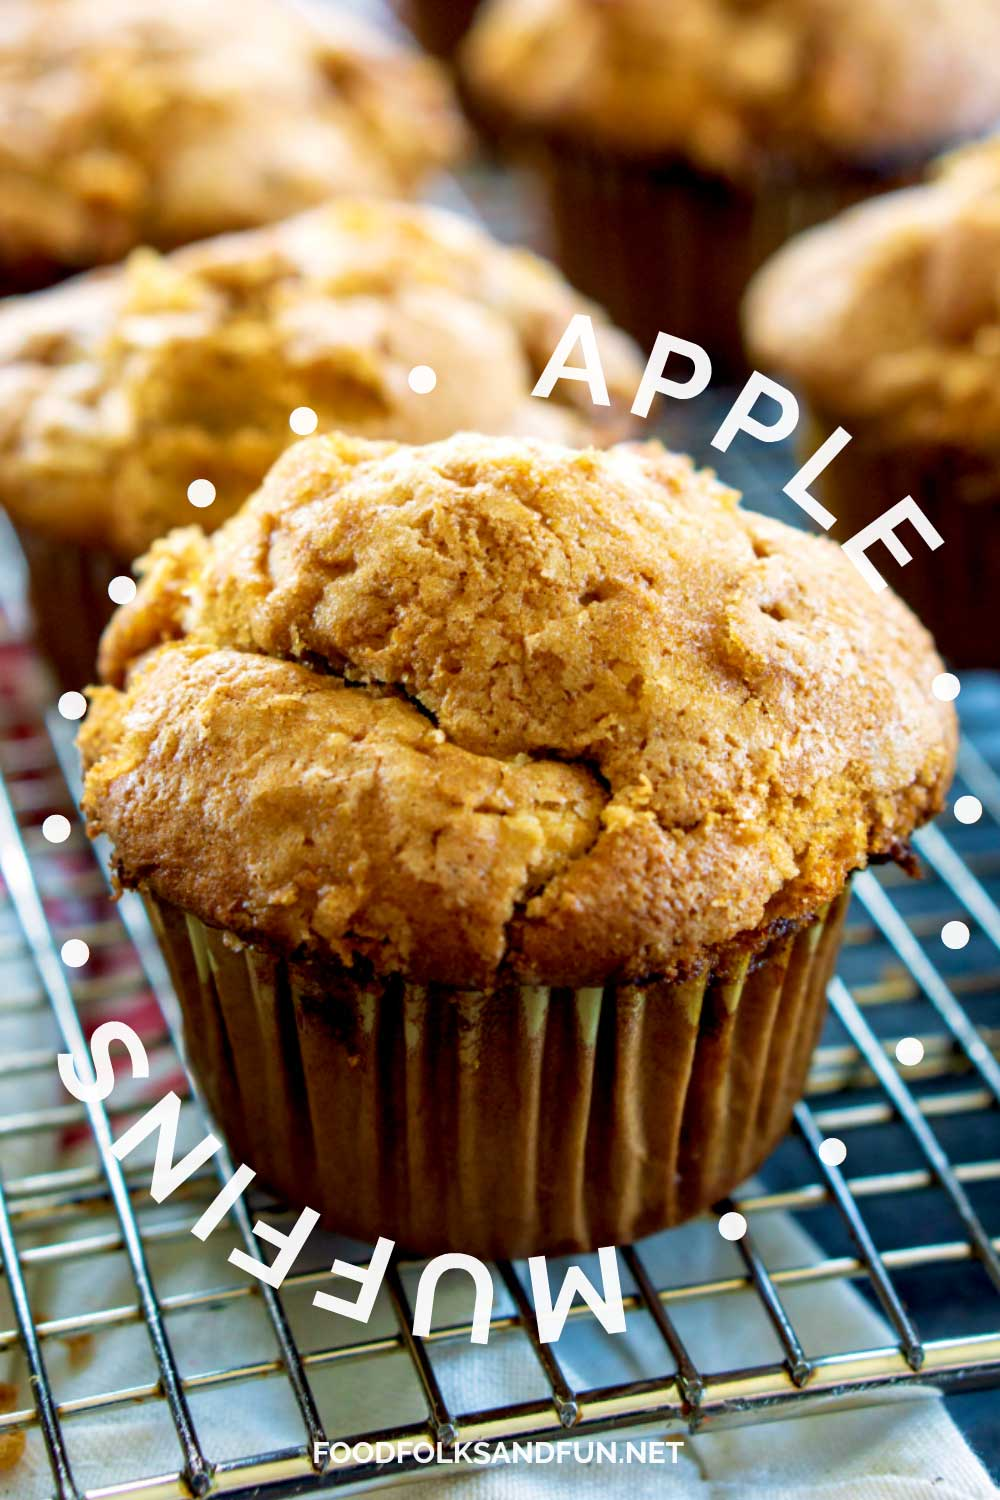 I'm not going to lie, cakey muffins are not my favorite. These Apple Muffins, however, are ALLLLL muffin, just how I like 'em!